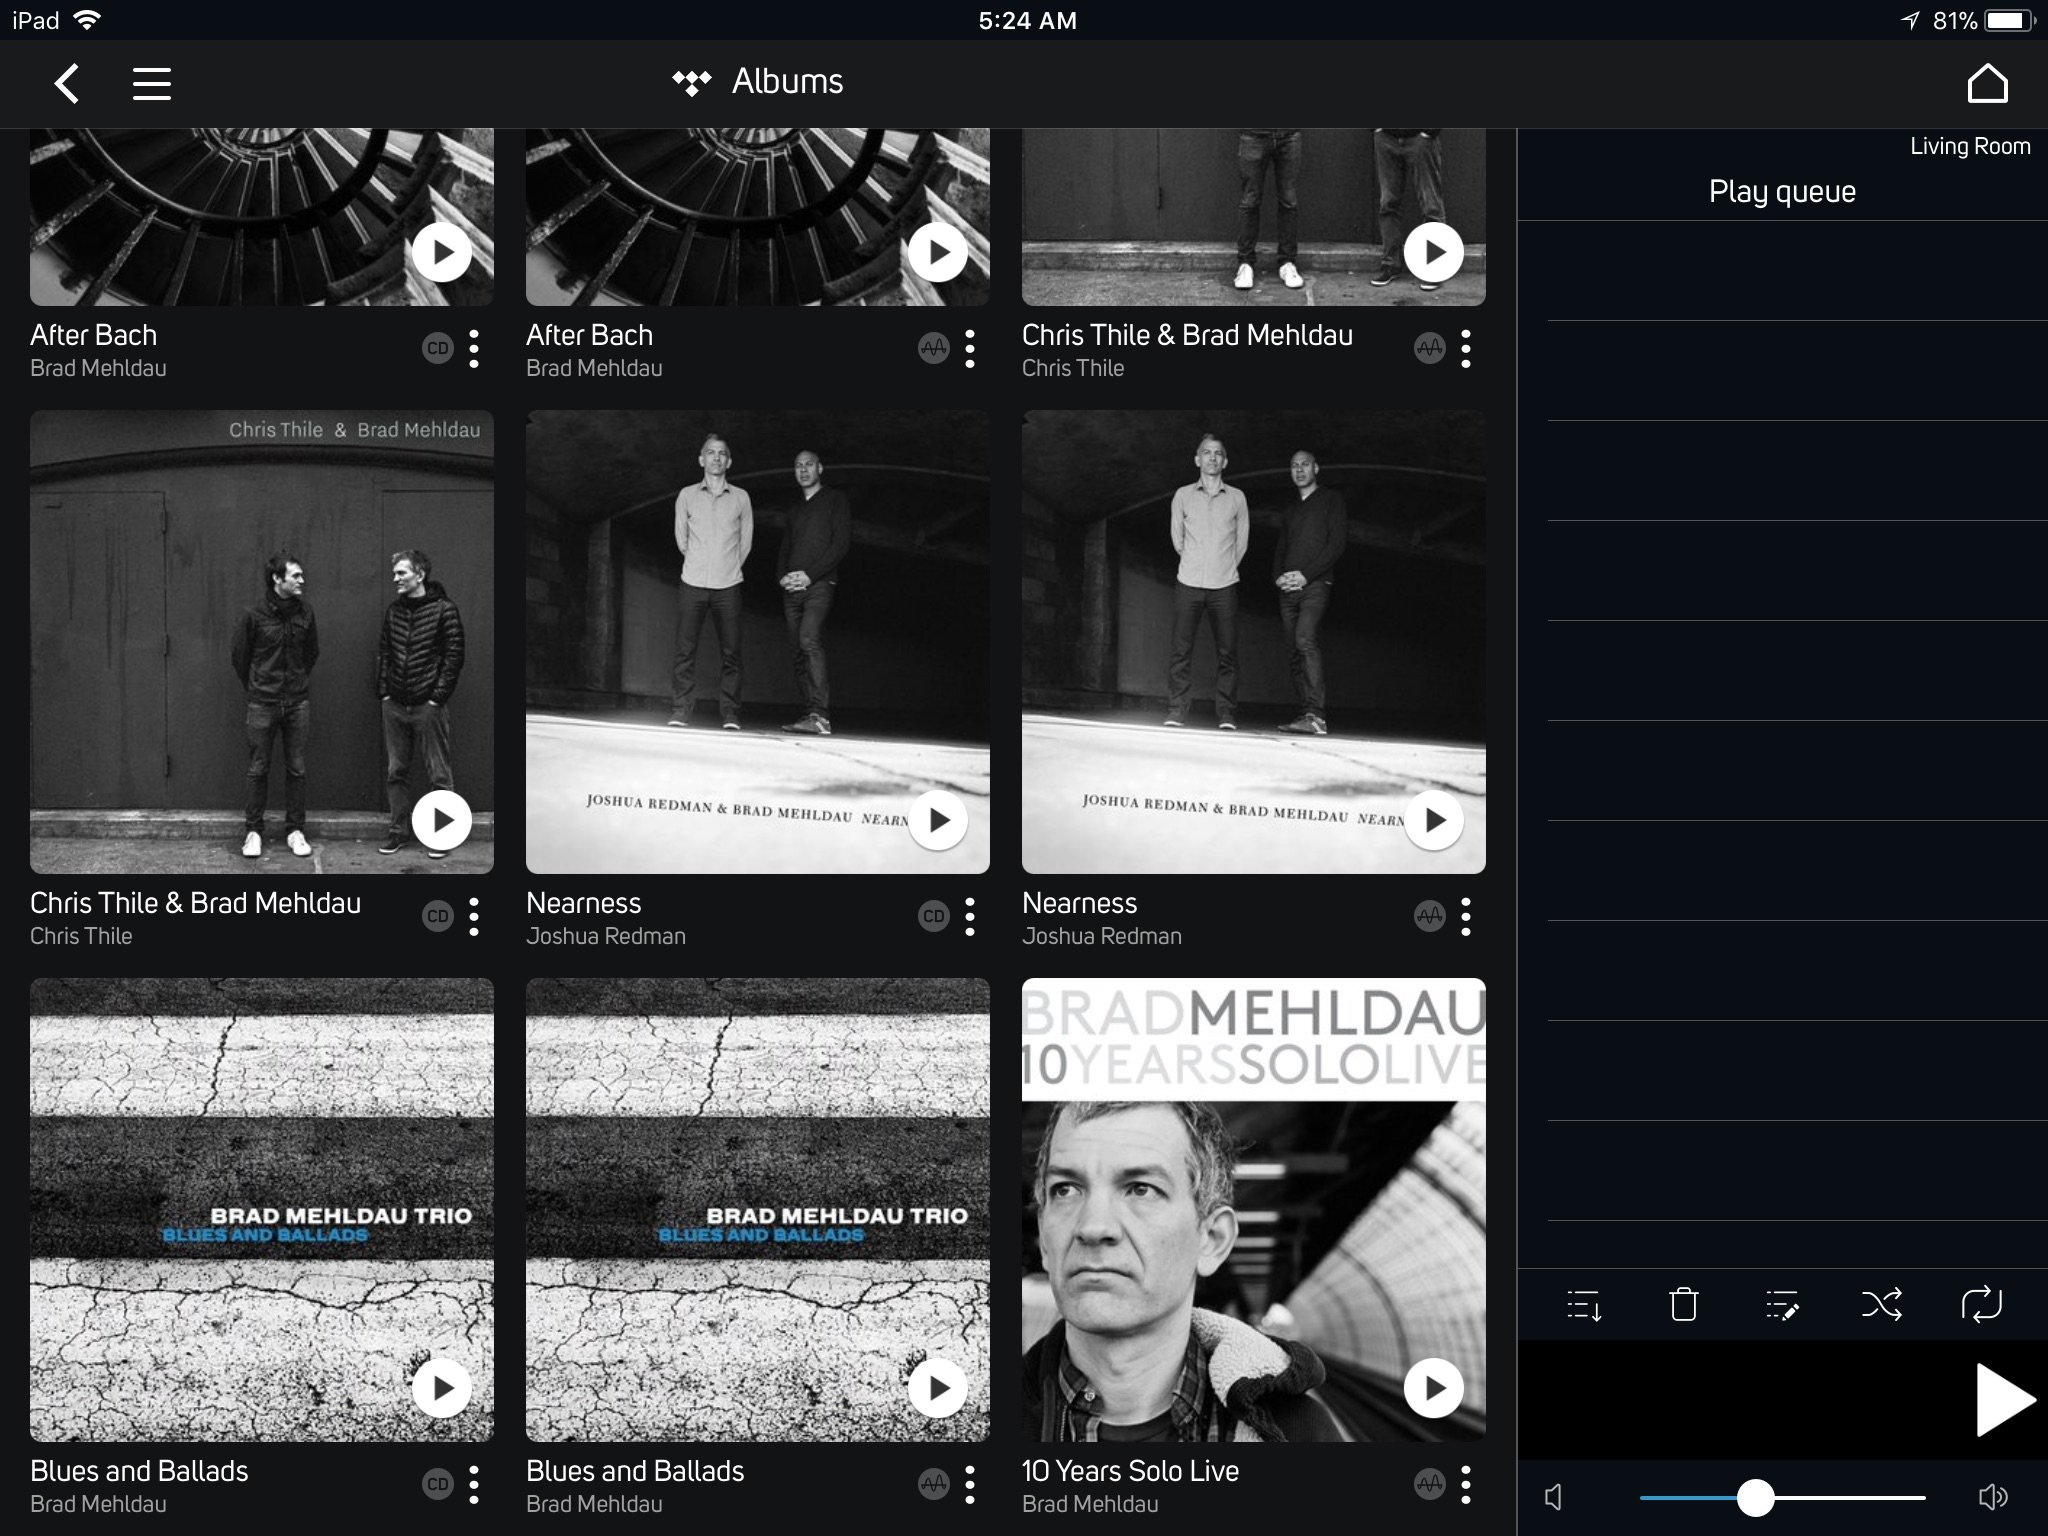 TIDAL on iPad: How can I see what albums are MQA? - Networking